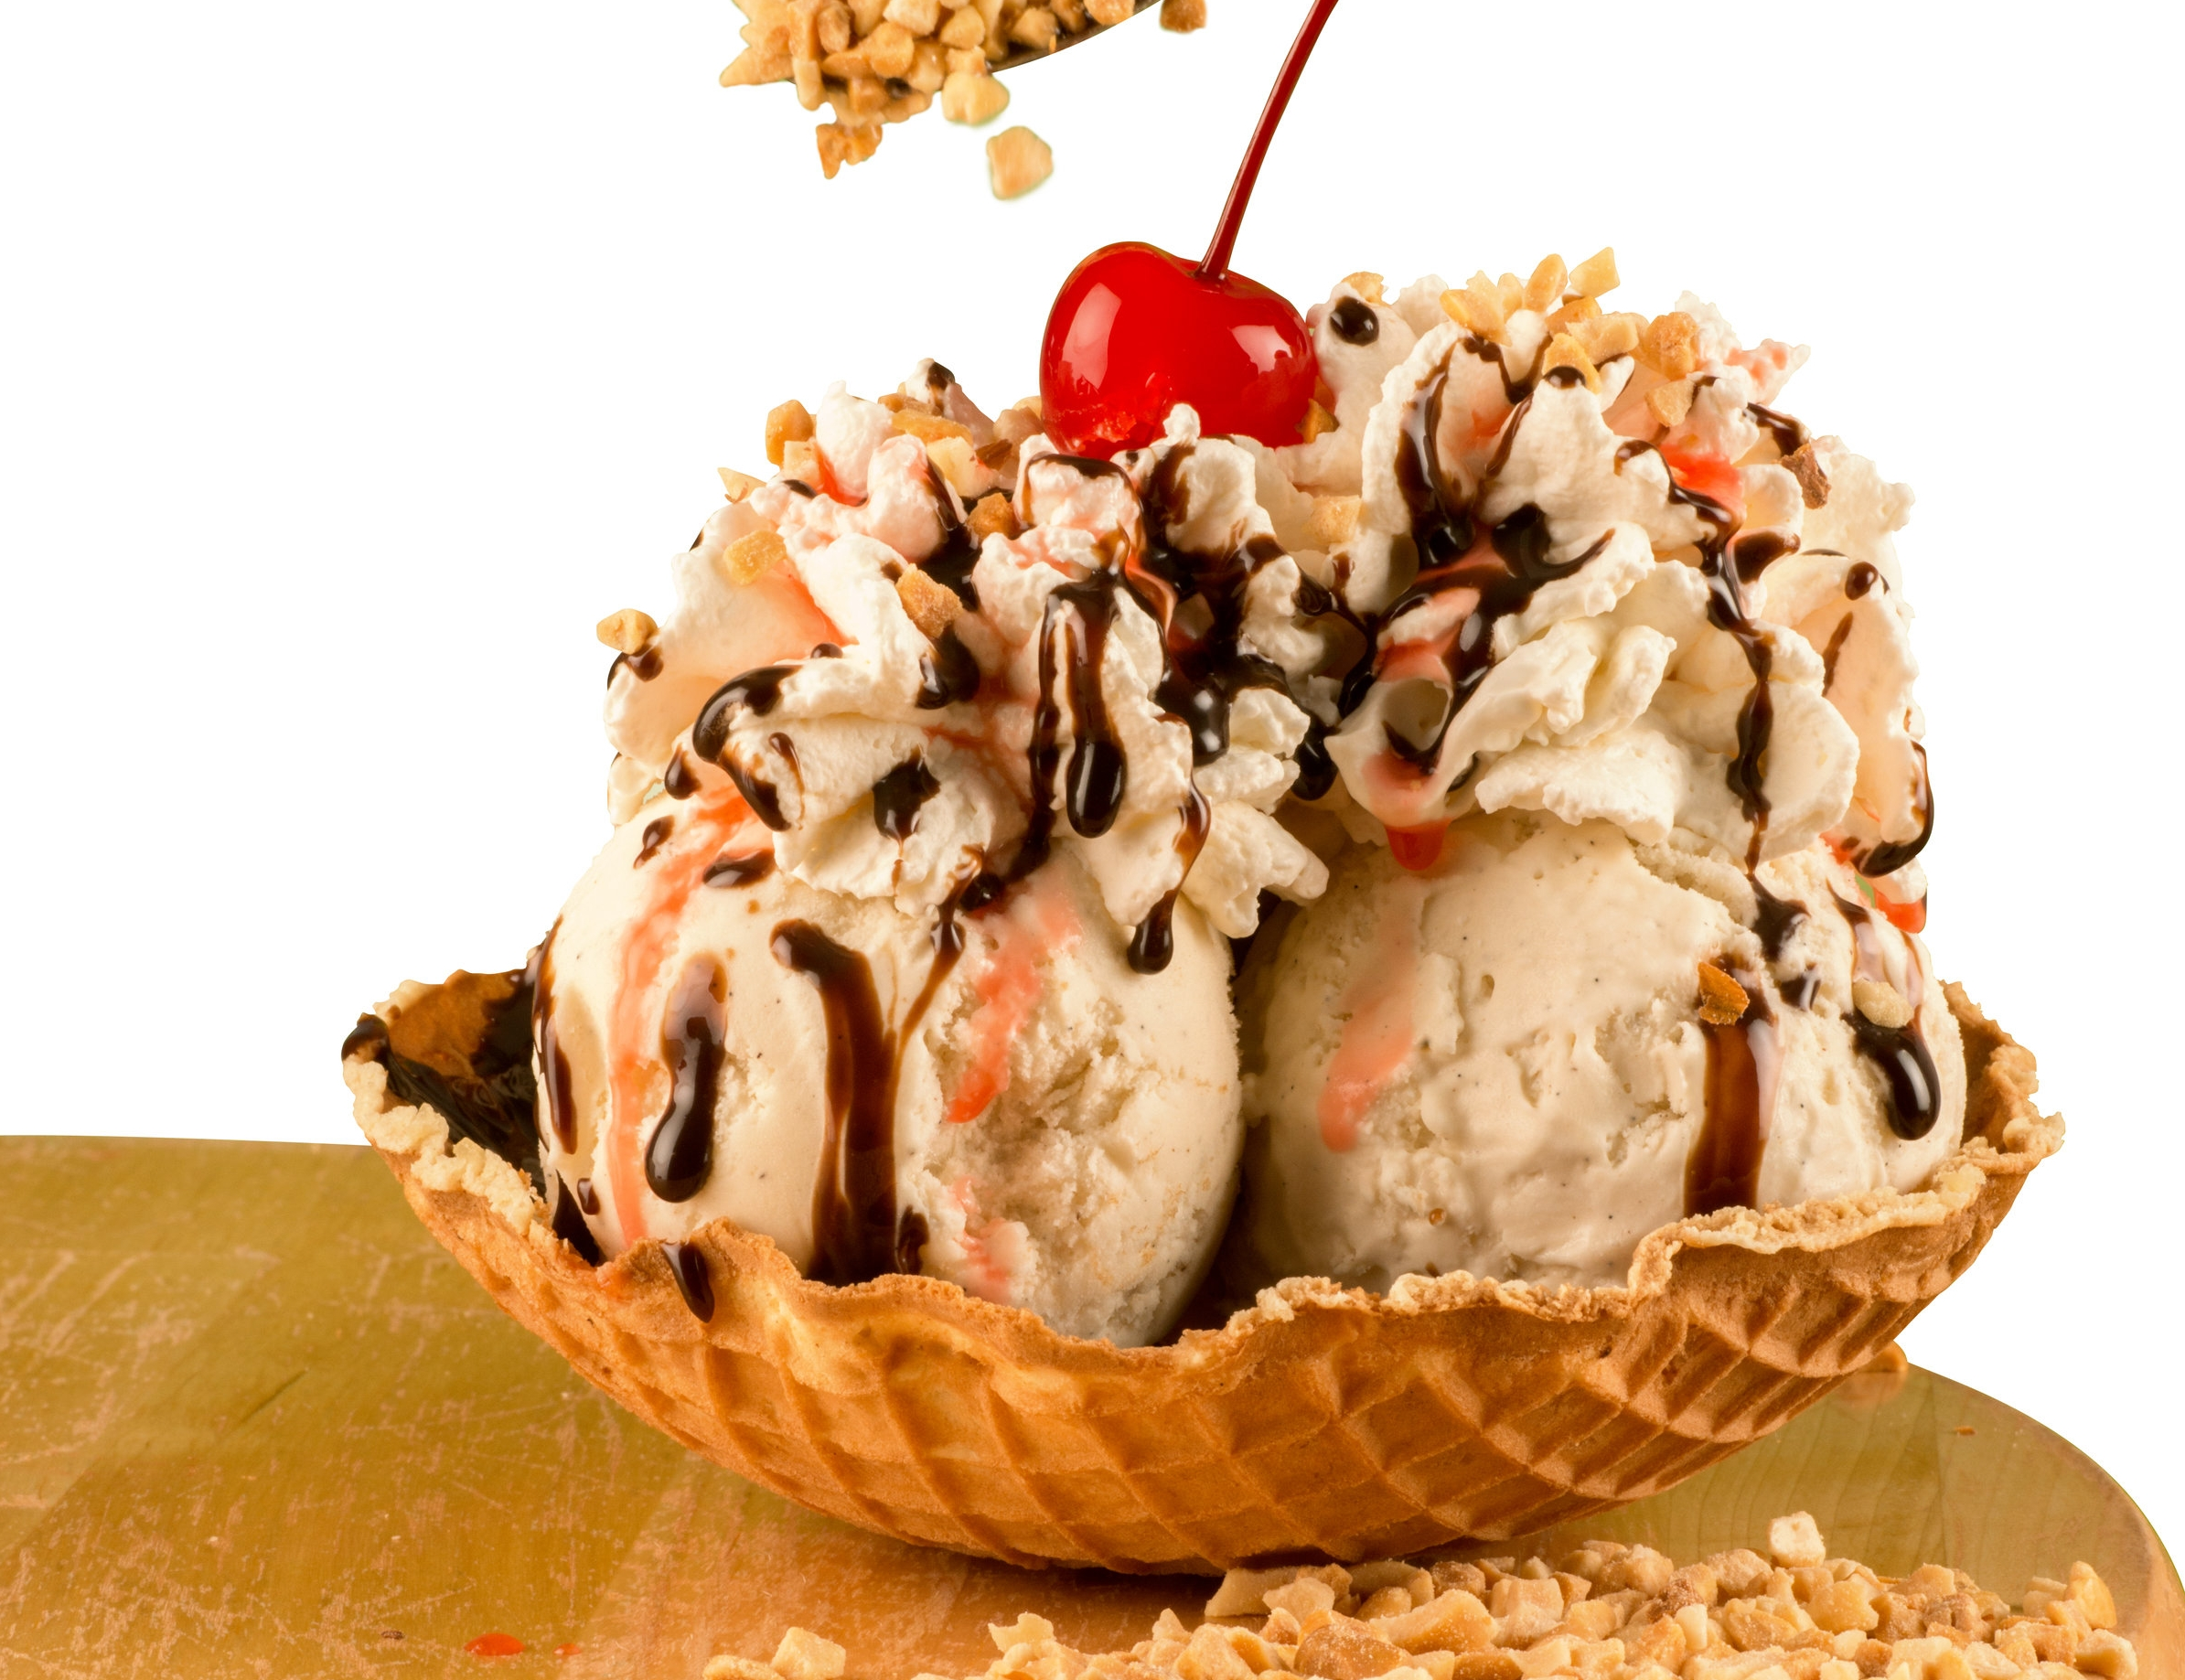 Butterfudge Sundae - Vanilla ice cream, whipped cream, fudge, peanuts and a cherry - $6.99